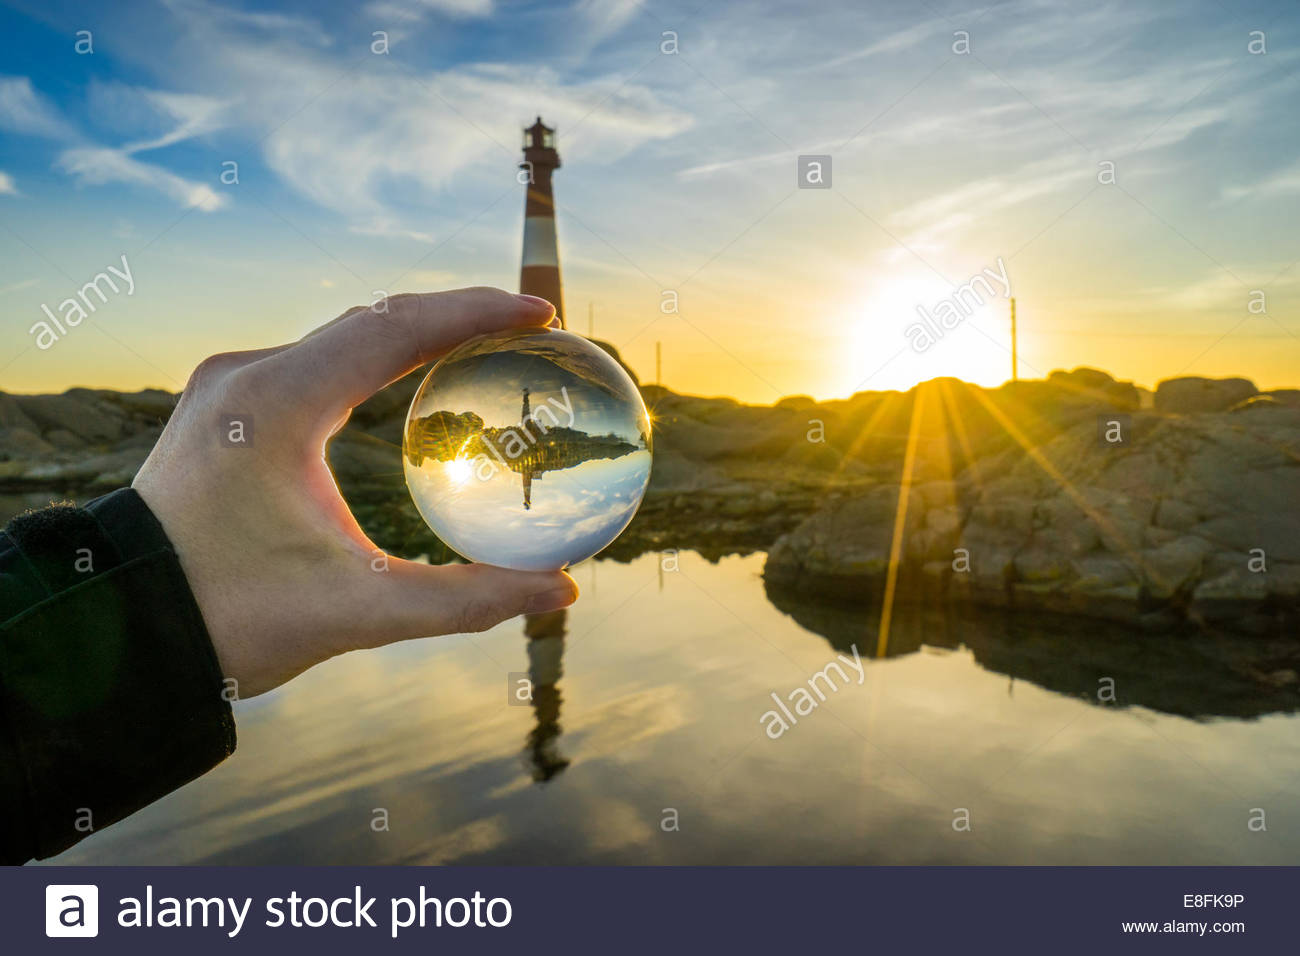 Norway, Rogaland, Eigeroy lighthouse and sunset seen through crystal ball - Stock Image